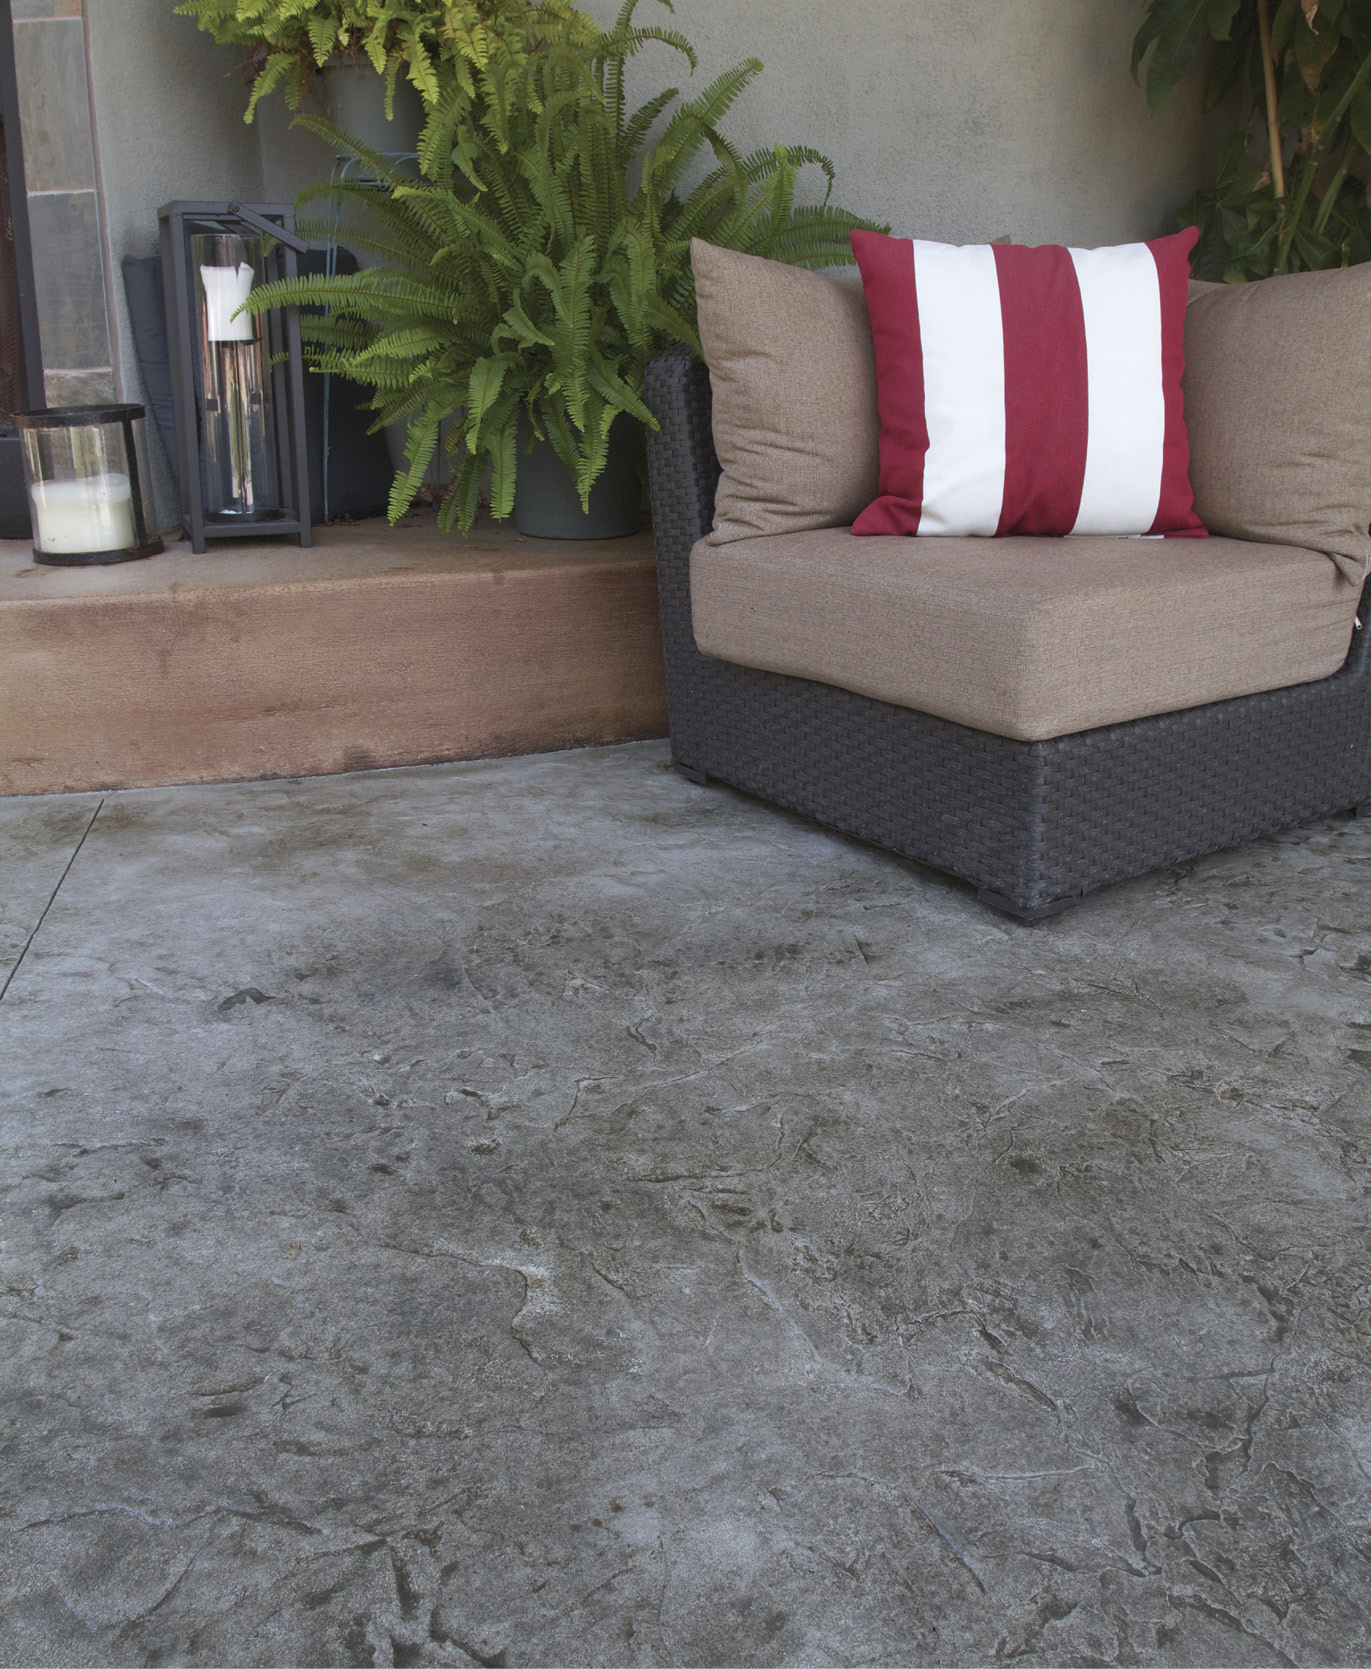 With as little as one quarter inch of material, such as the Stamp-It overlay from Westcoat, a plain concrete patio can be transformed into an expanse of textured concrete with a custom blend of colors.